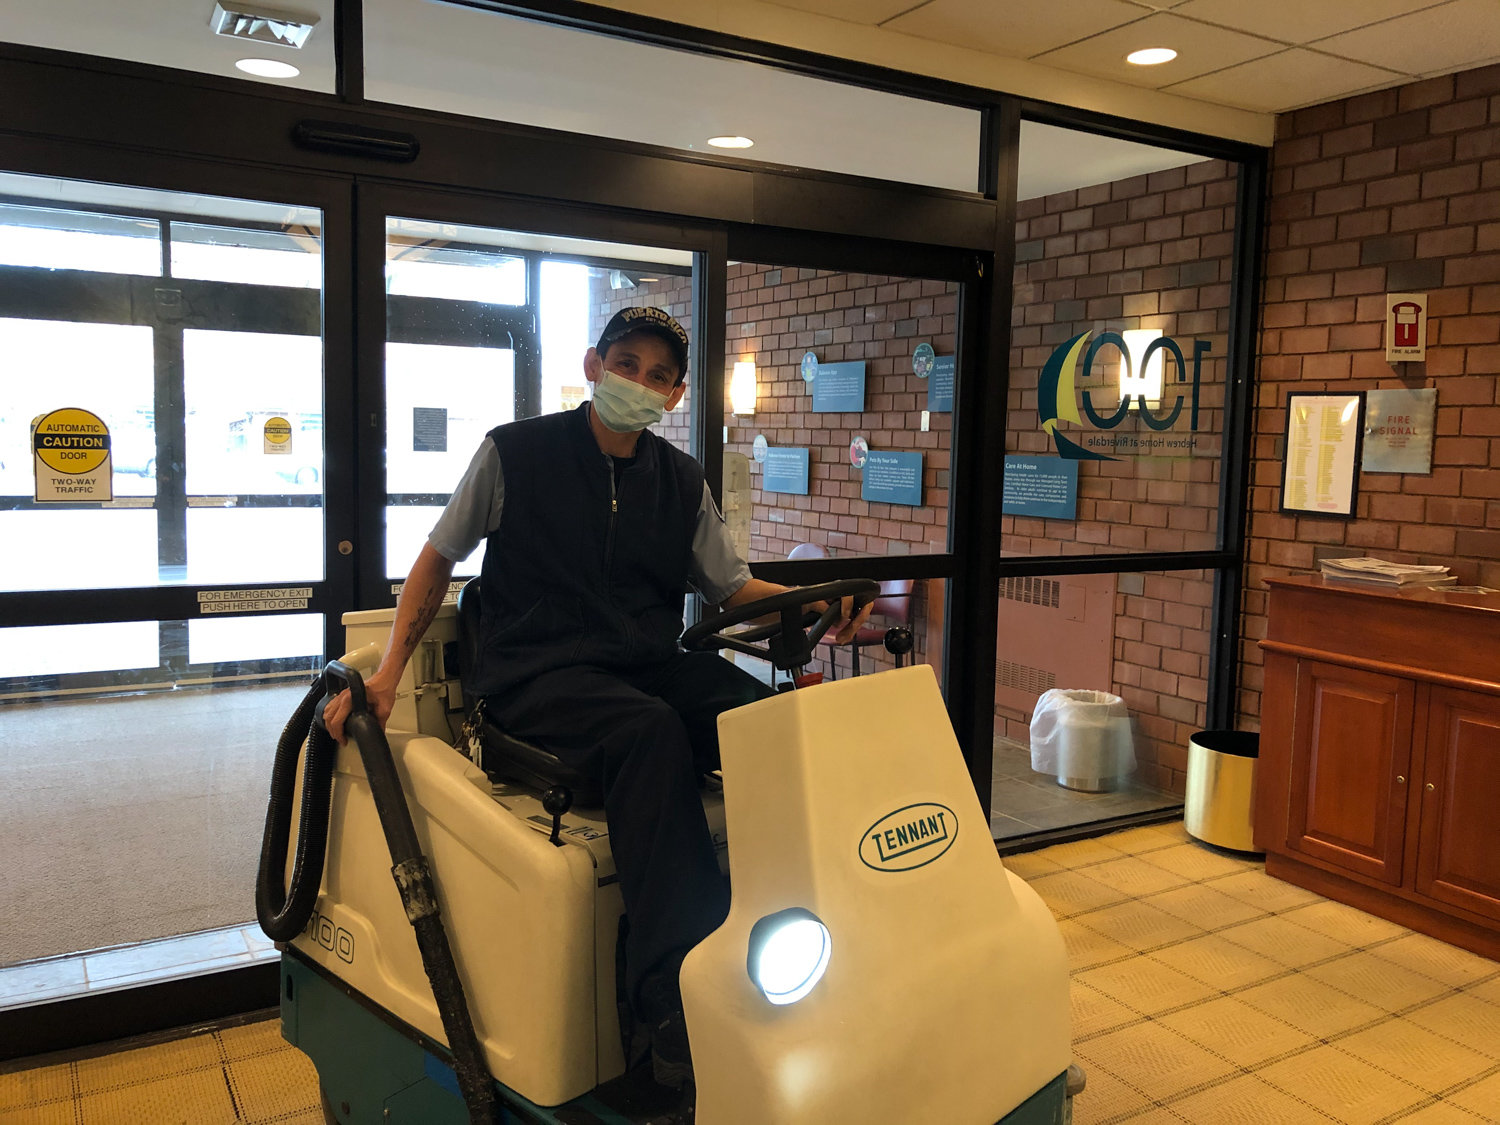 Eloy Torres, a housekeeper at the Hebrew Home at Riverdale, is an essential part of keeping the Palisade Avenue facility clean. That role has taken a renewed significance since the advent of the coronavirus pandemic.